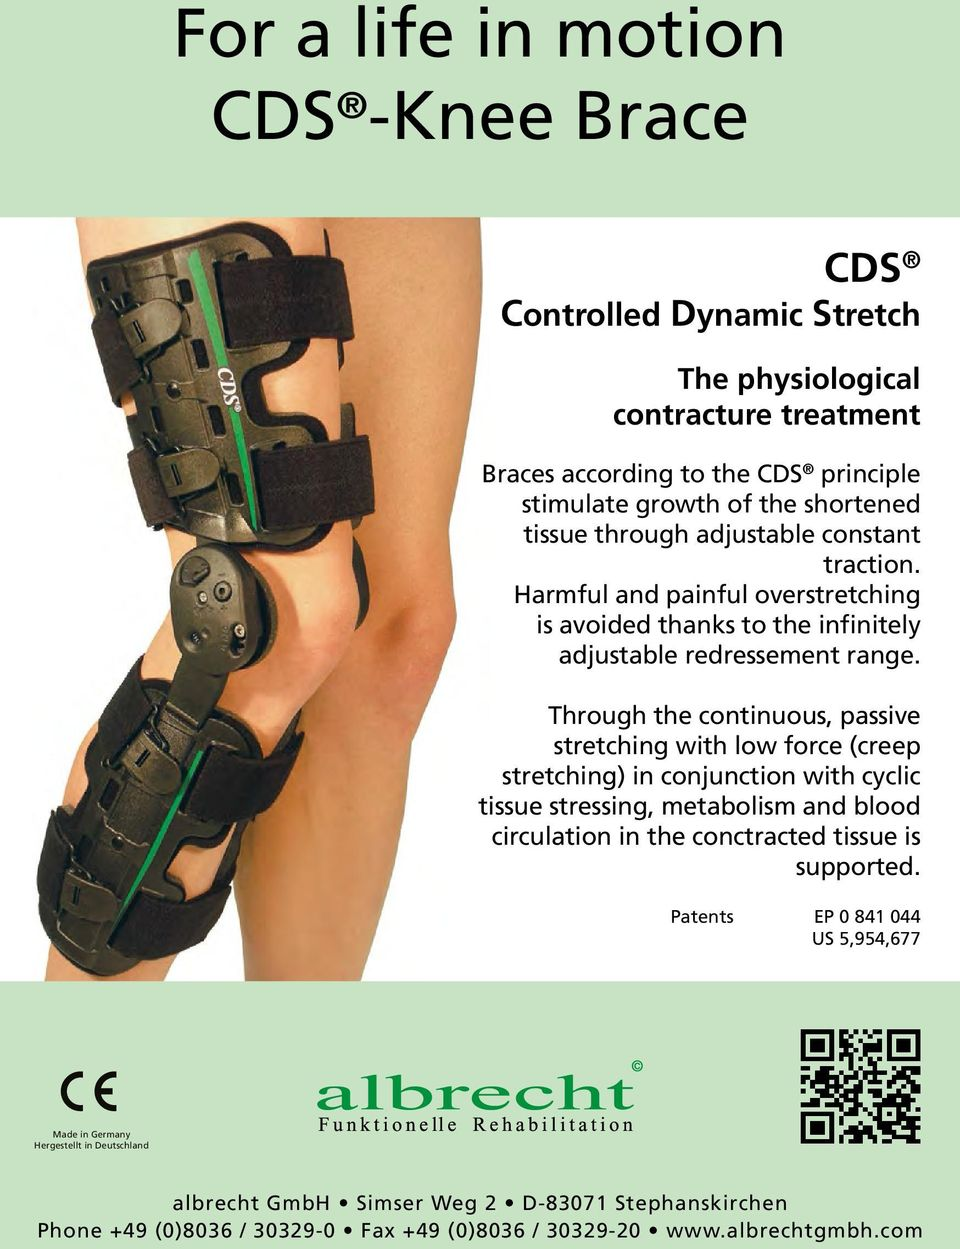 Through the continuous, passive stretching with low force (creep stretching) in conjunction with cyclic tissue stressing, metabolism and blood circulation in the conctracted tissue